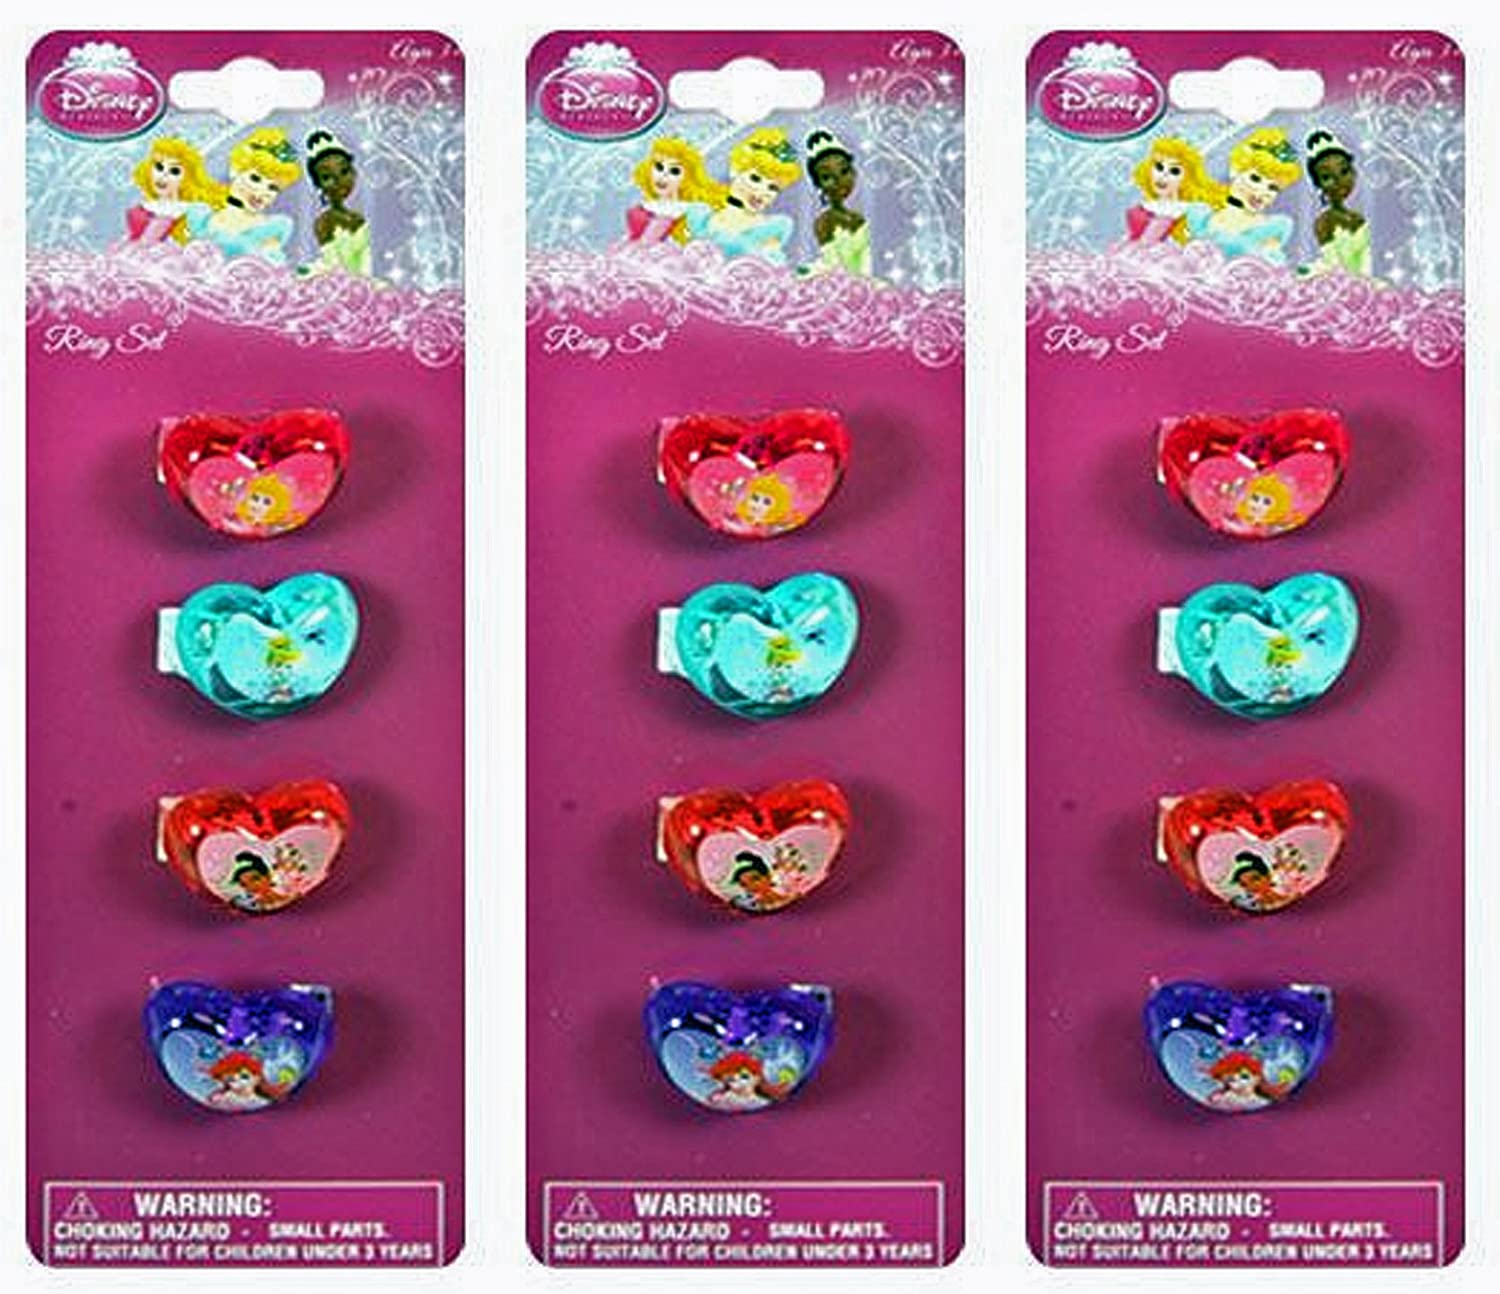 Amazon.com: 12-Piece Disney Princess Plastic Heart-Shaped Rings ...